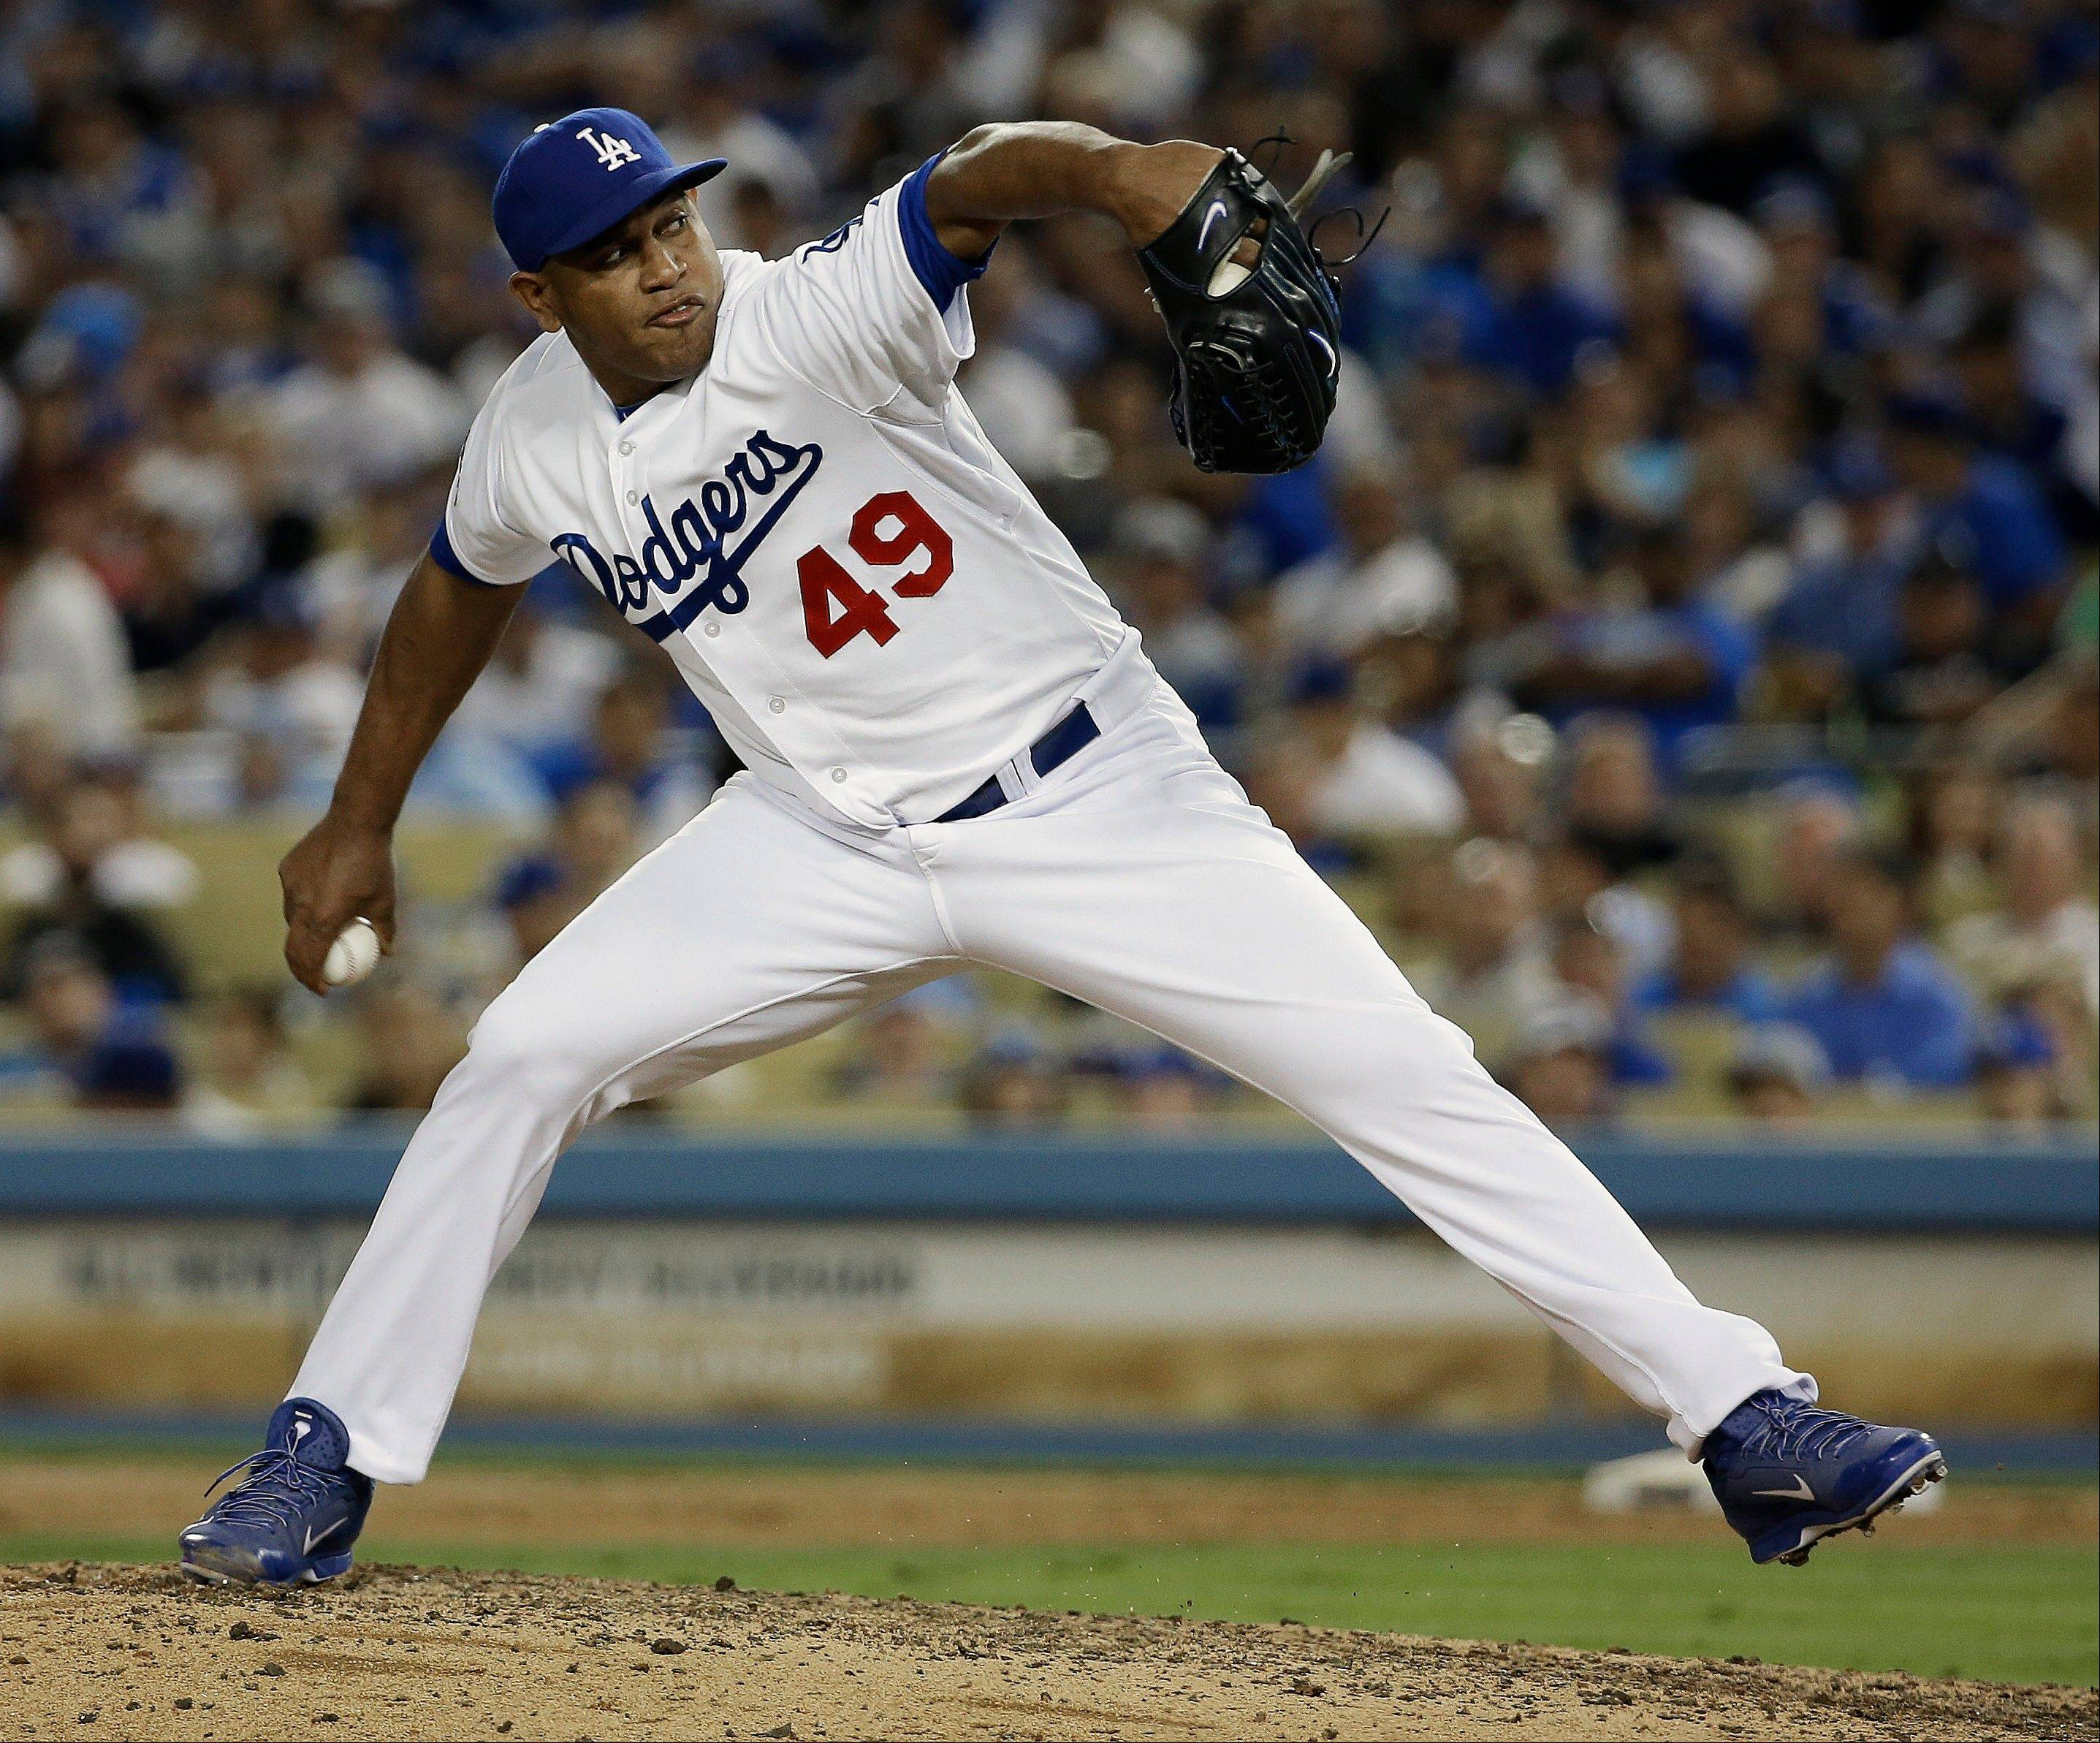 Dodgers reliever Carlos Marmol throws during the eighth inning of Game 4.